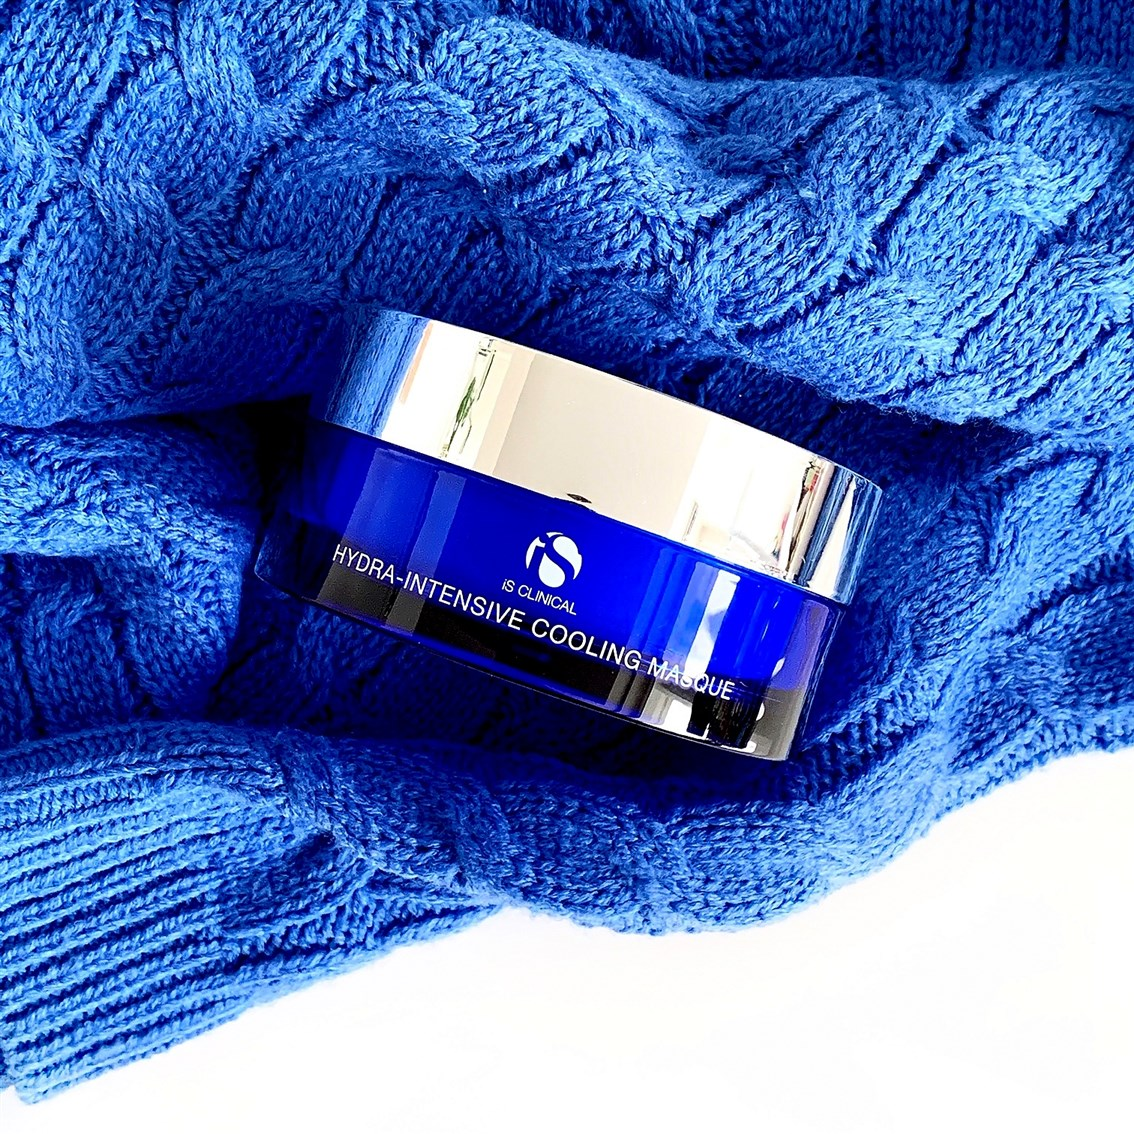 Is Clinical Hydra-Intensive Cooling Masque opinie